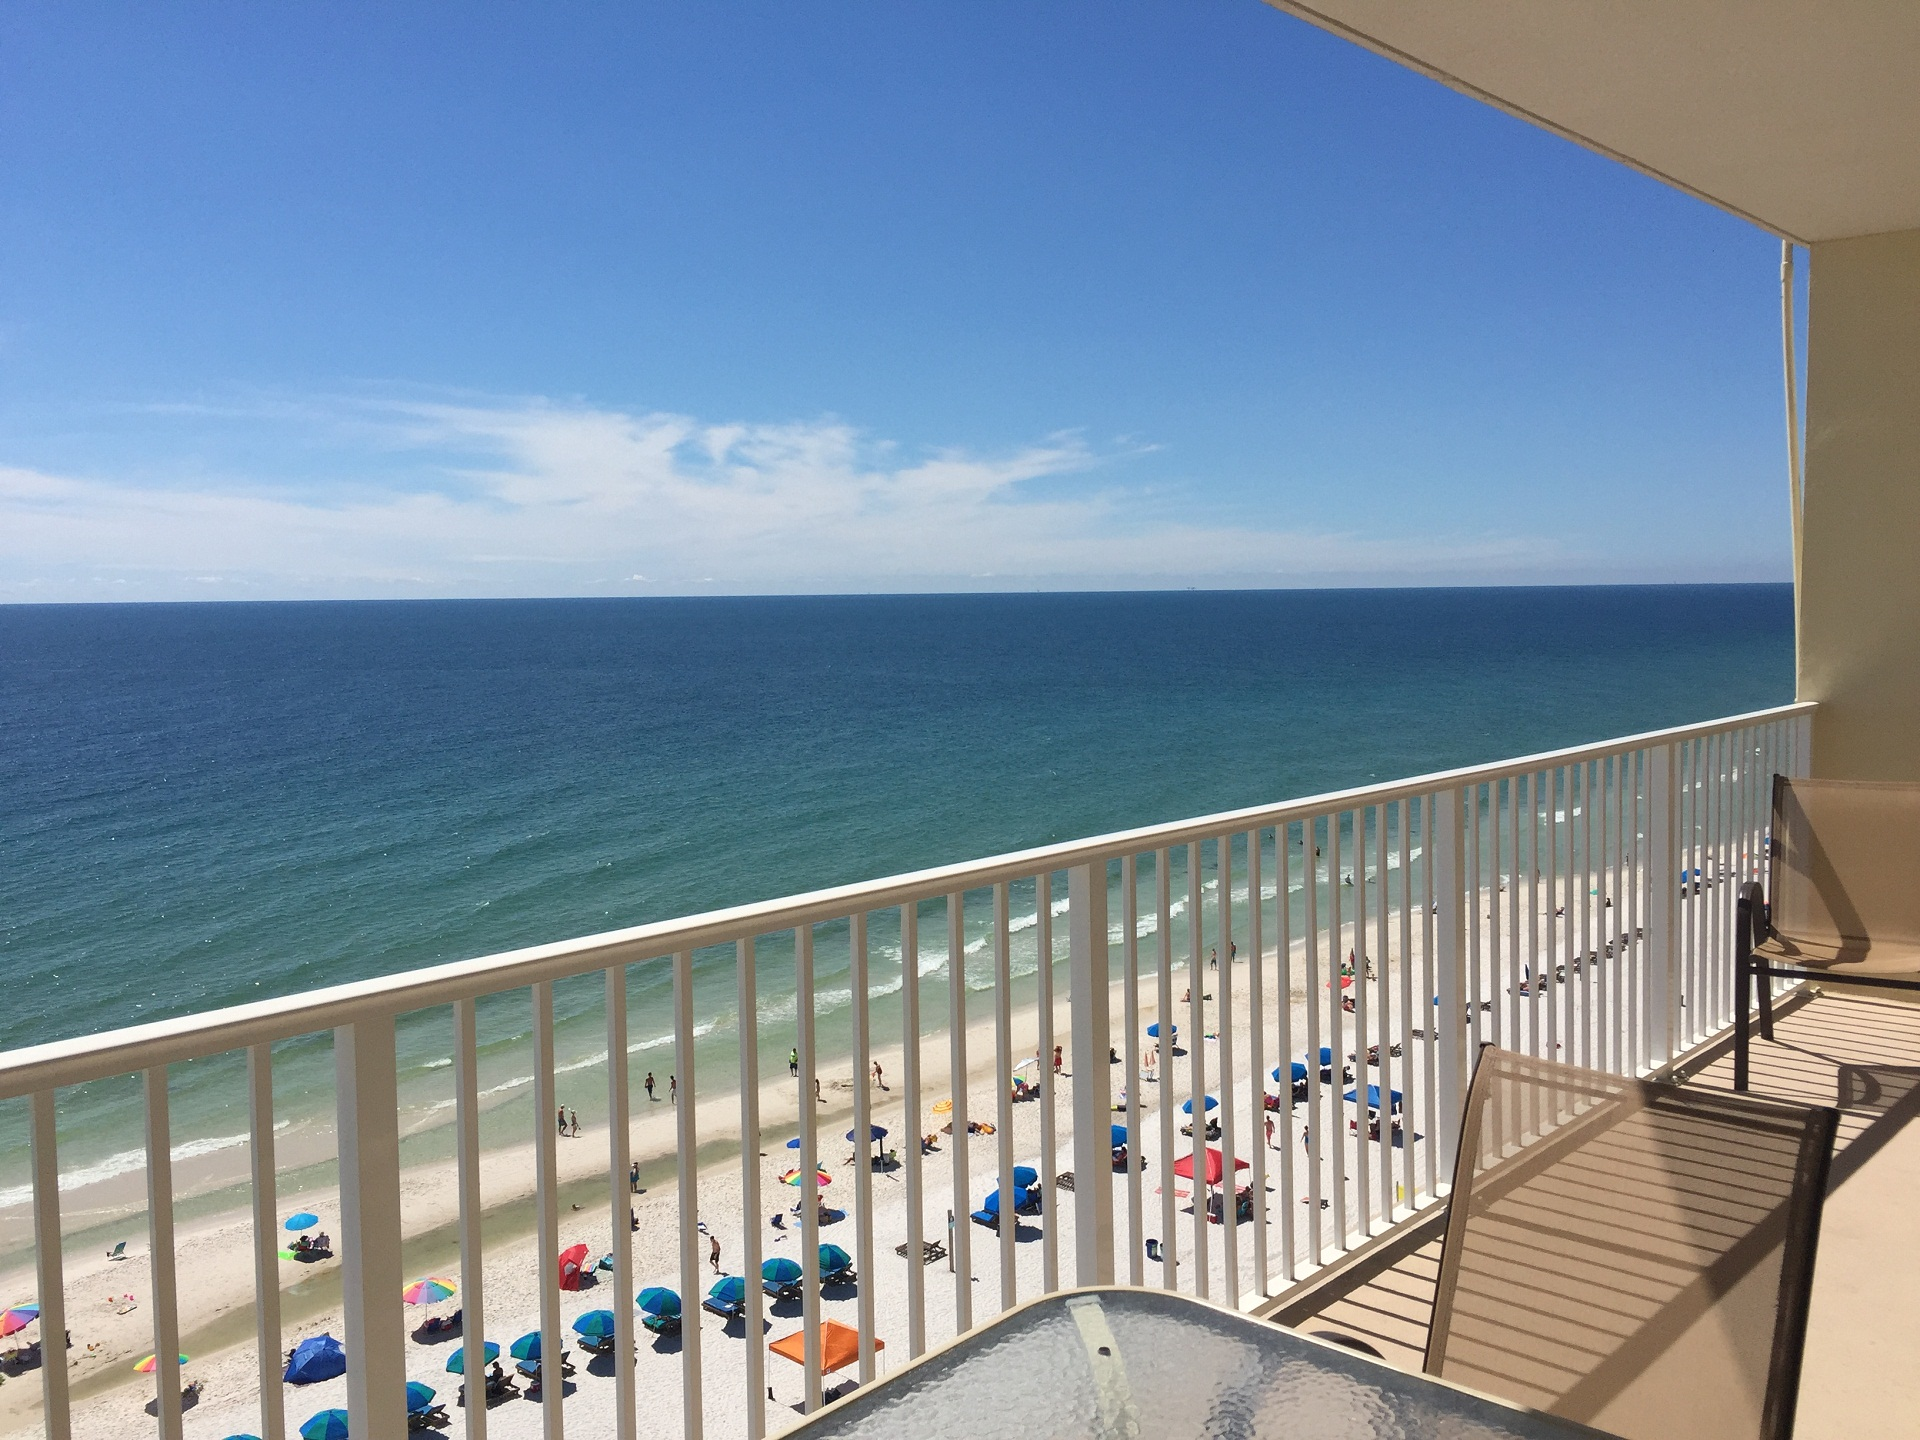 price drop alert for all crystal shores beach vacation rentals